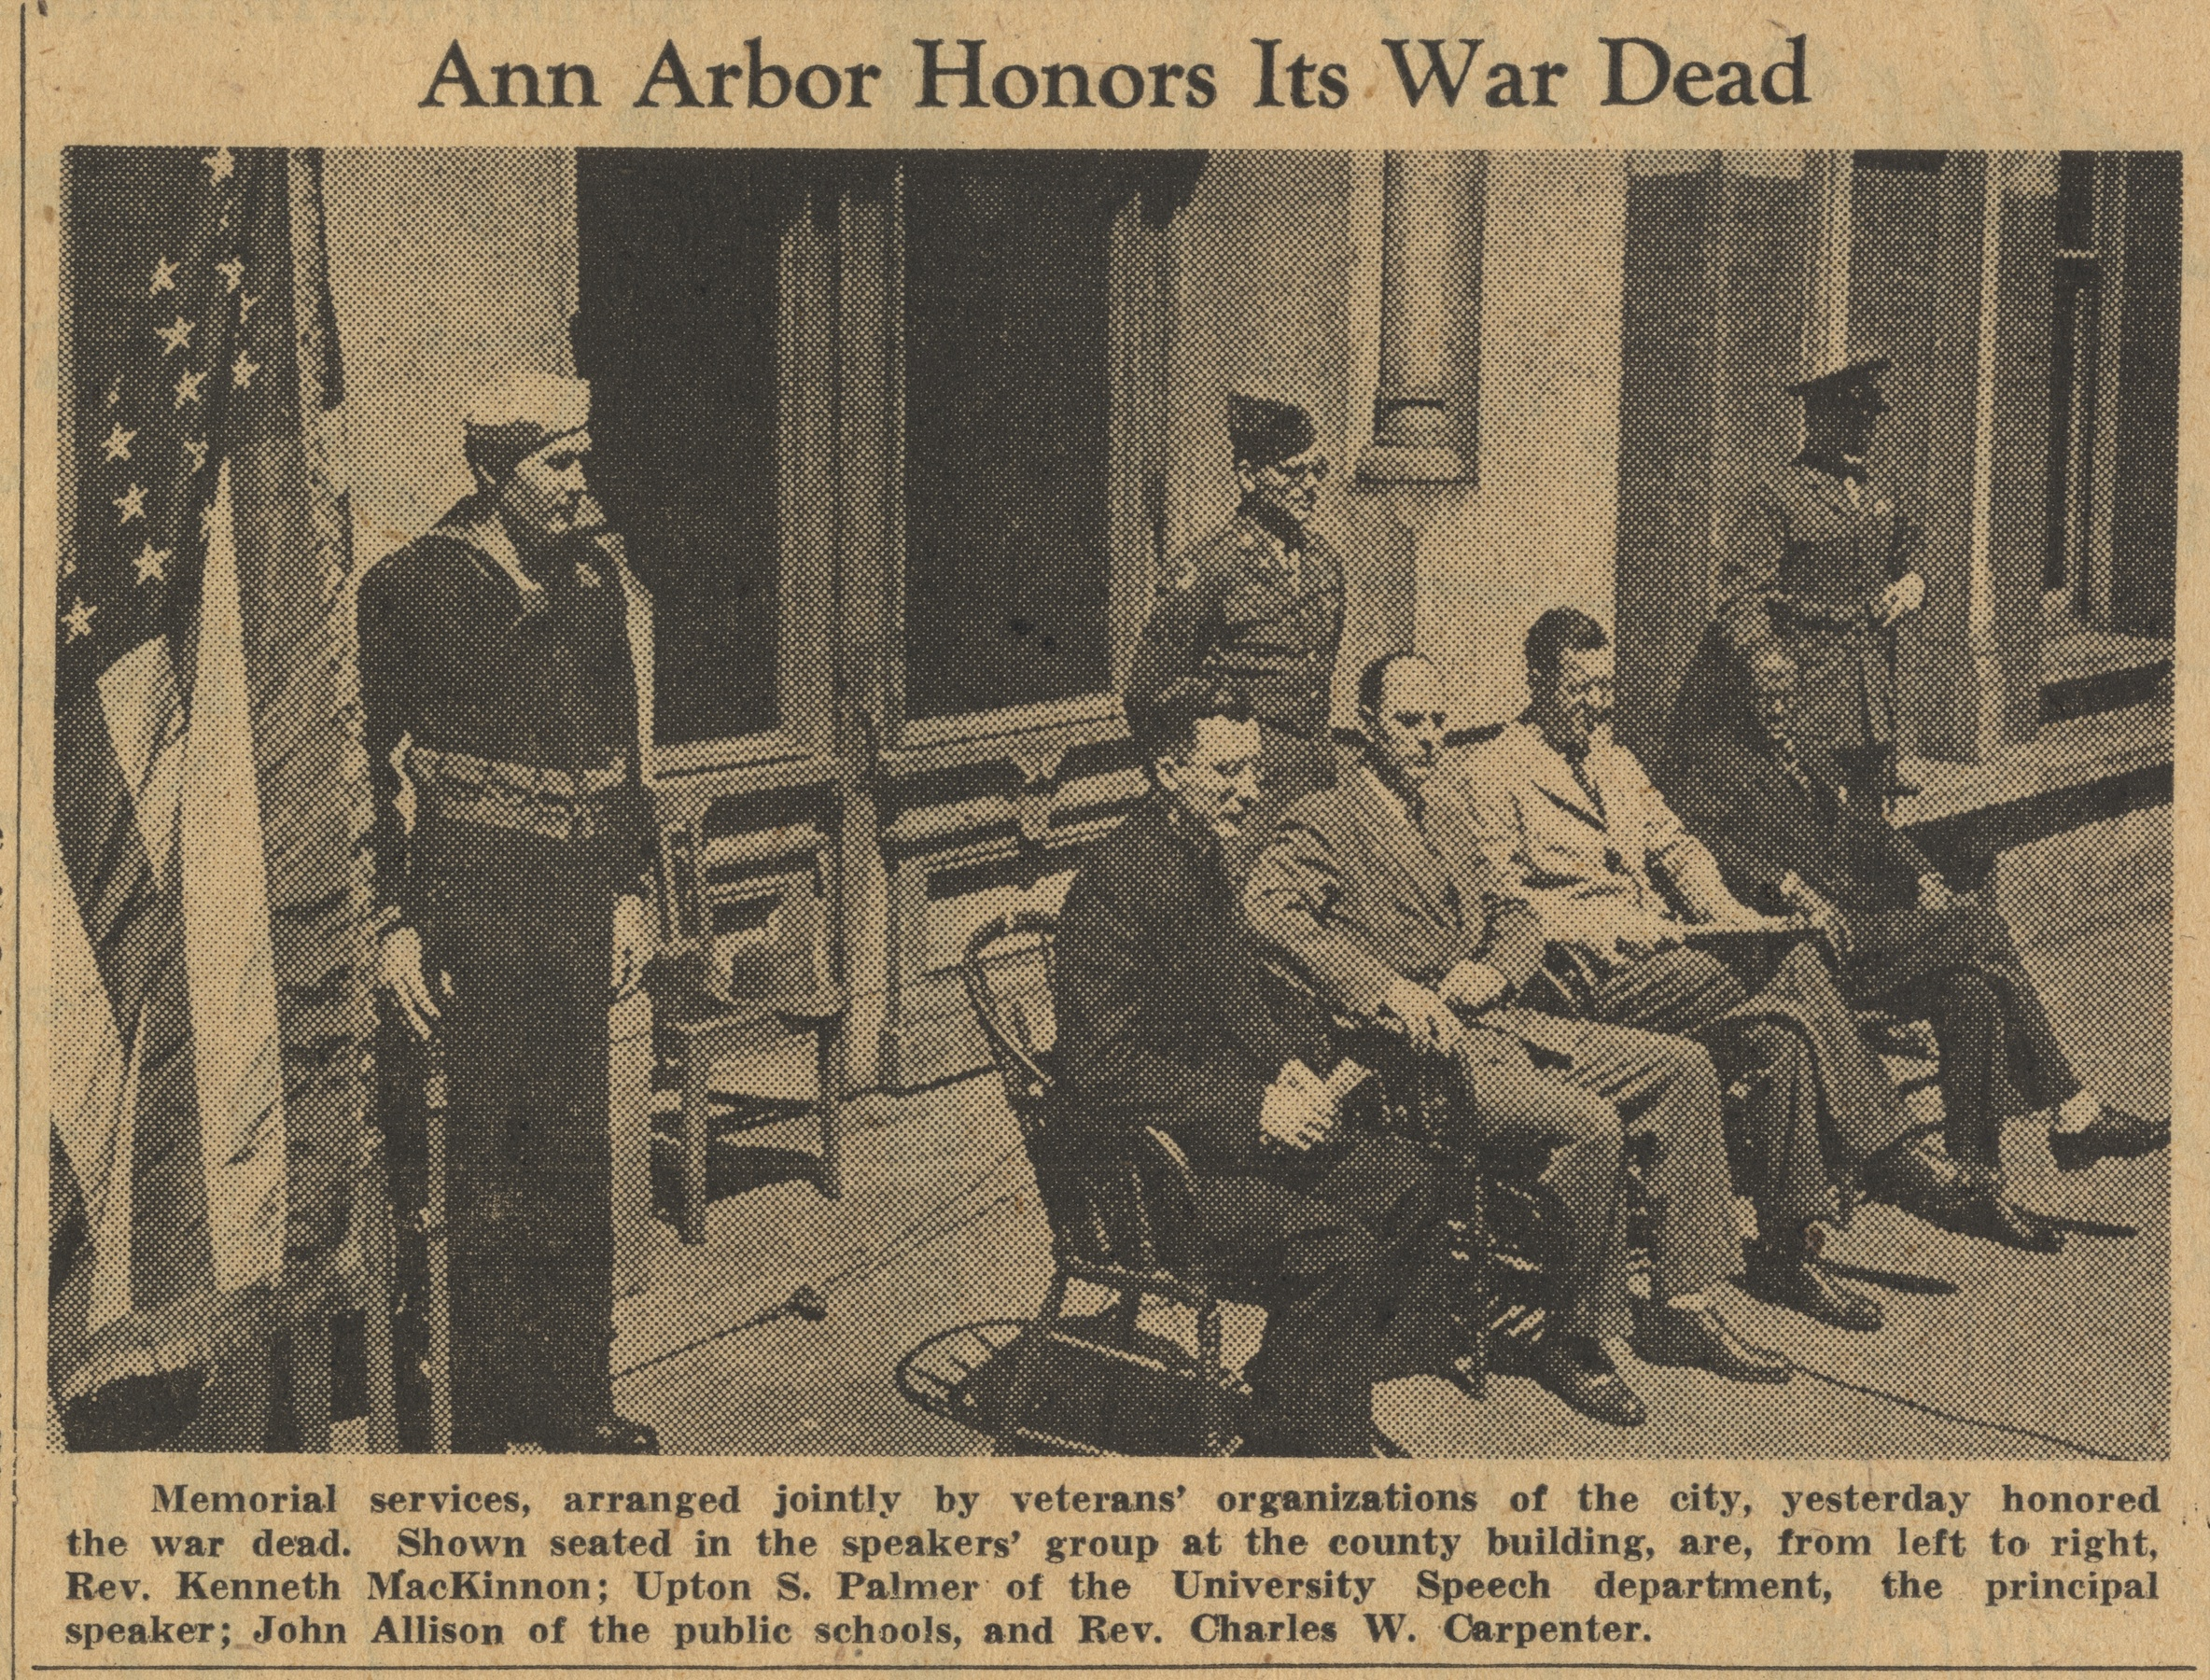 Ann Arbor Honors Its War Dead image